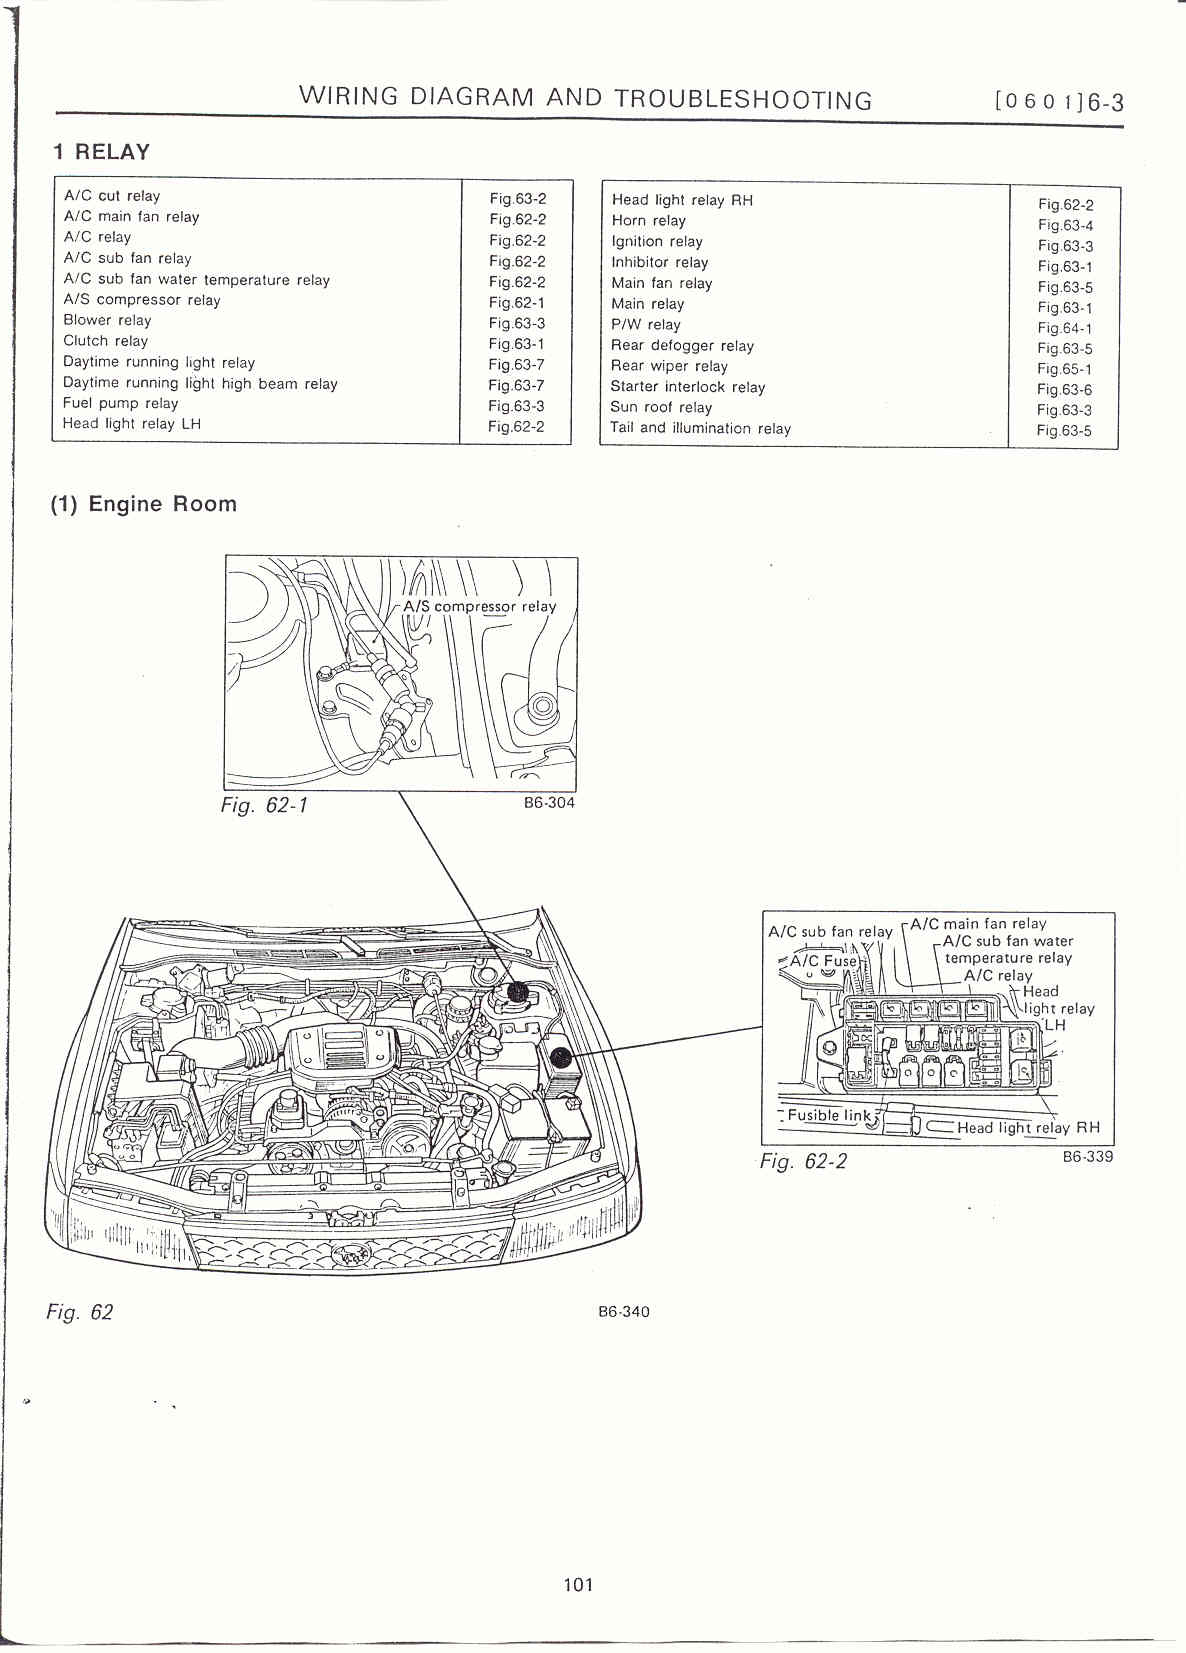 1981 Dodge Ram Wiring Diagram Great Design Of 2012 2500 Headlight 1997 Subaru Fuse Box U2022 For Free 2006